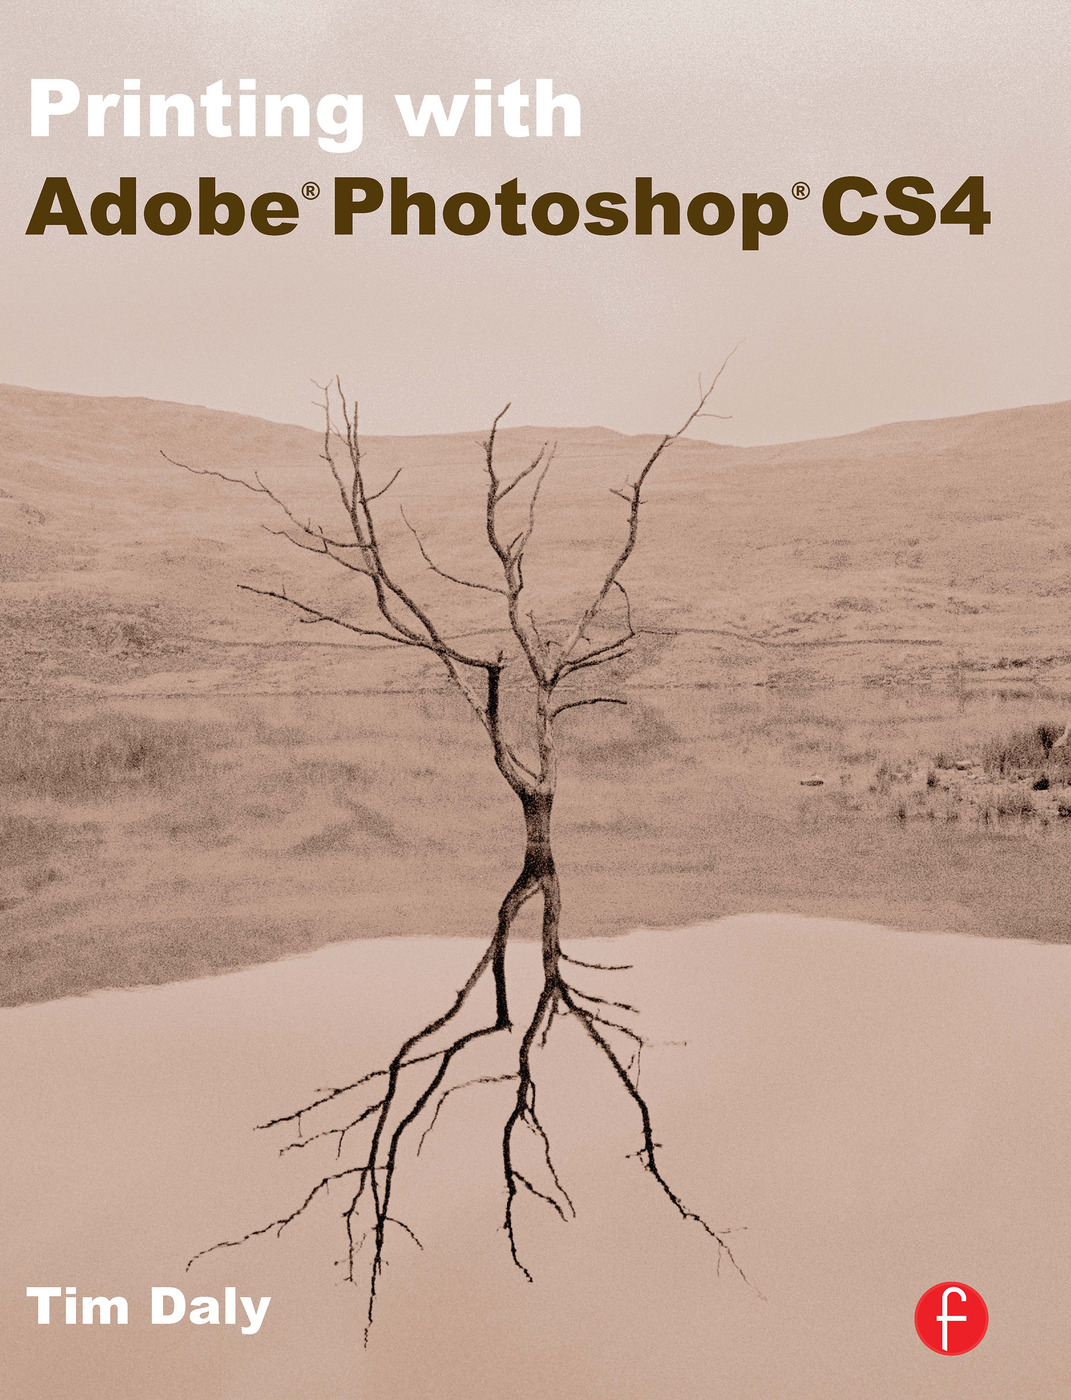 Printing with Adobe Photoshop CS4 book cover